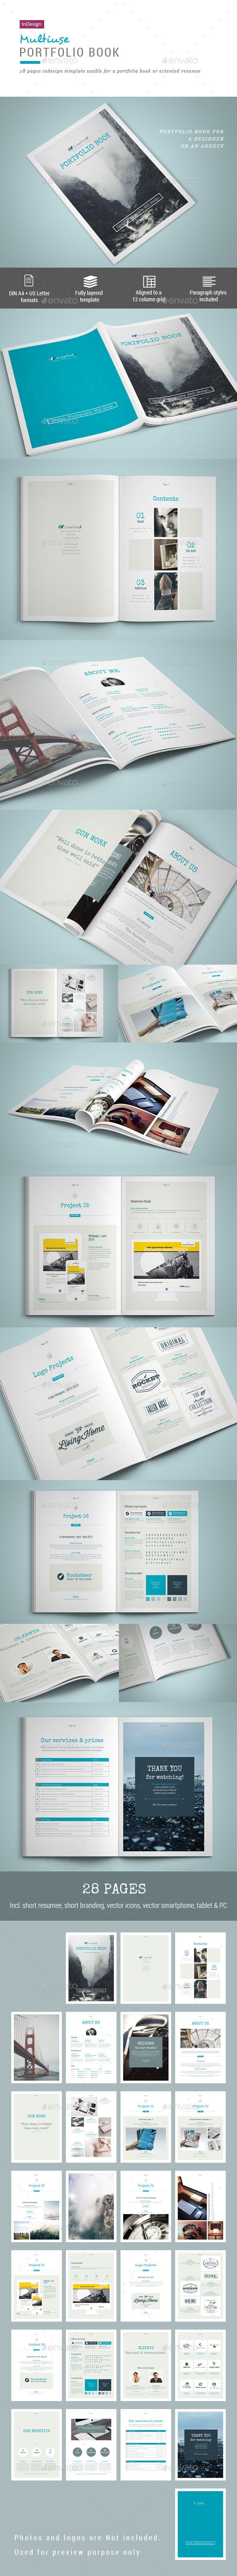 Portfolio Book - 28 Pages Template #design Download: http://graphicriver.net/item/portfolio-book-28-pages/11710399?ref=ksioks